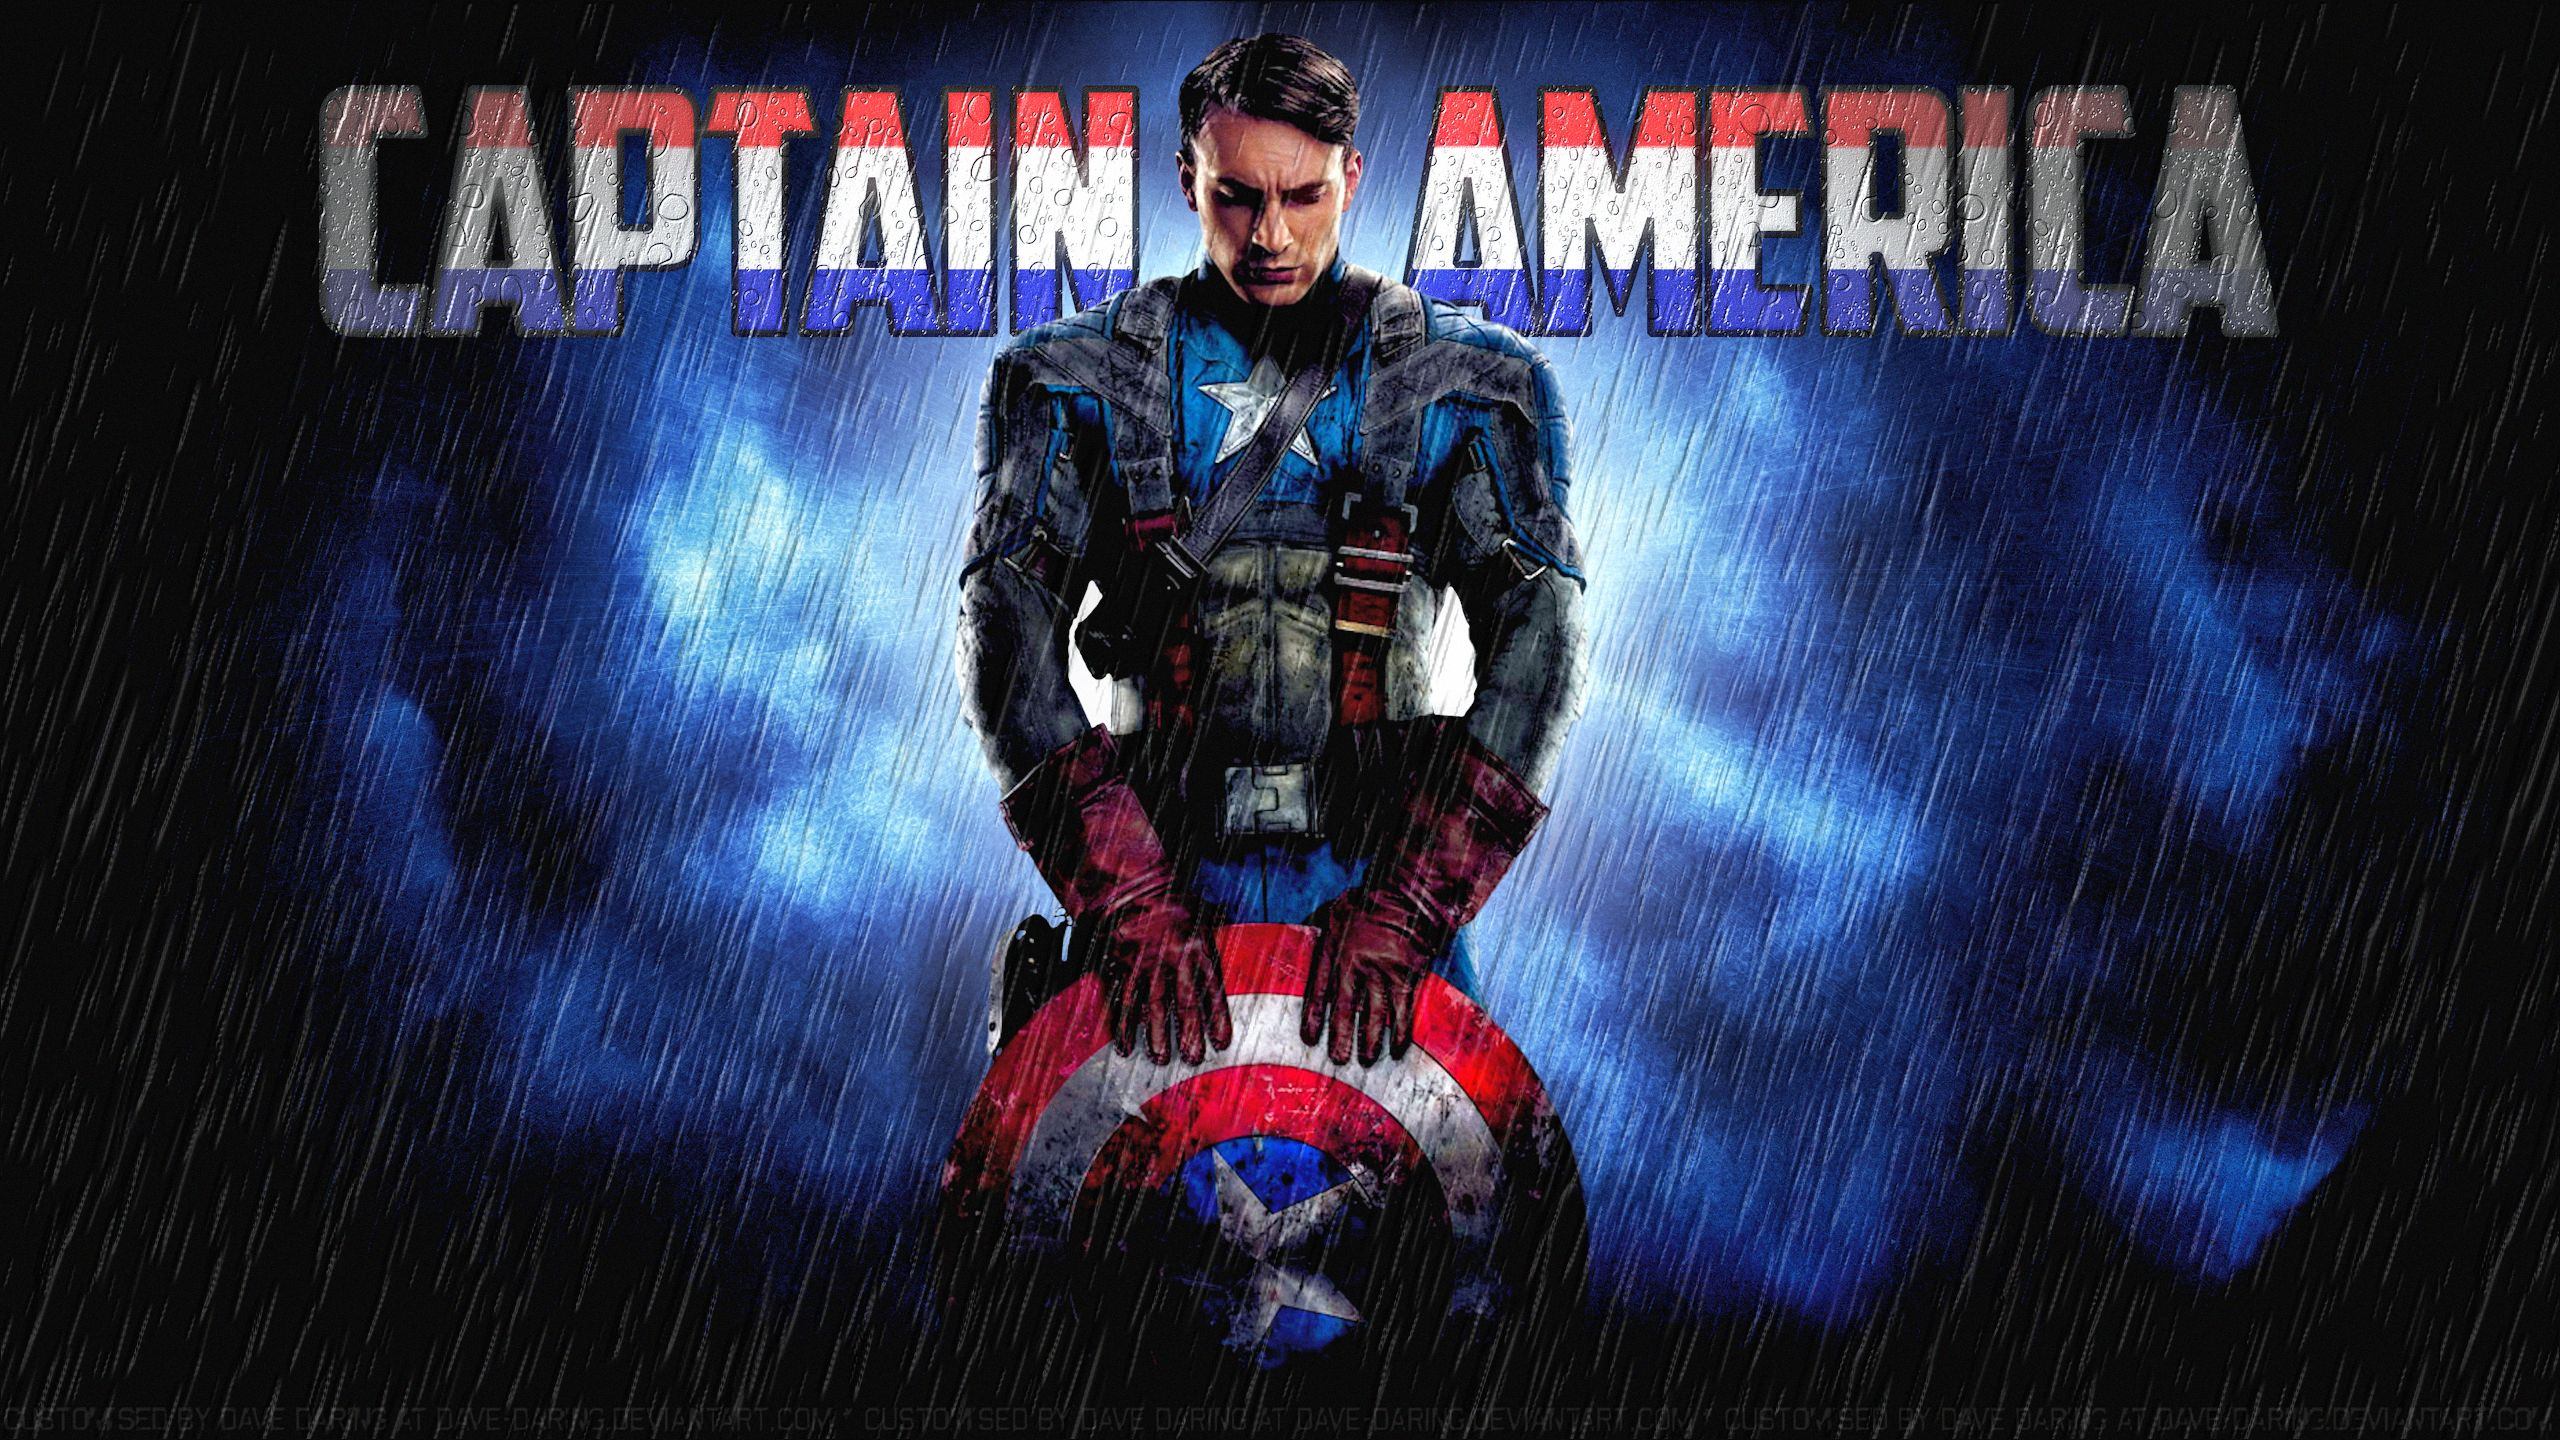 Good Wallpaper High Resolution Captain America - chris-evans-captain-america-movie_100130  Image_77226.jpg